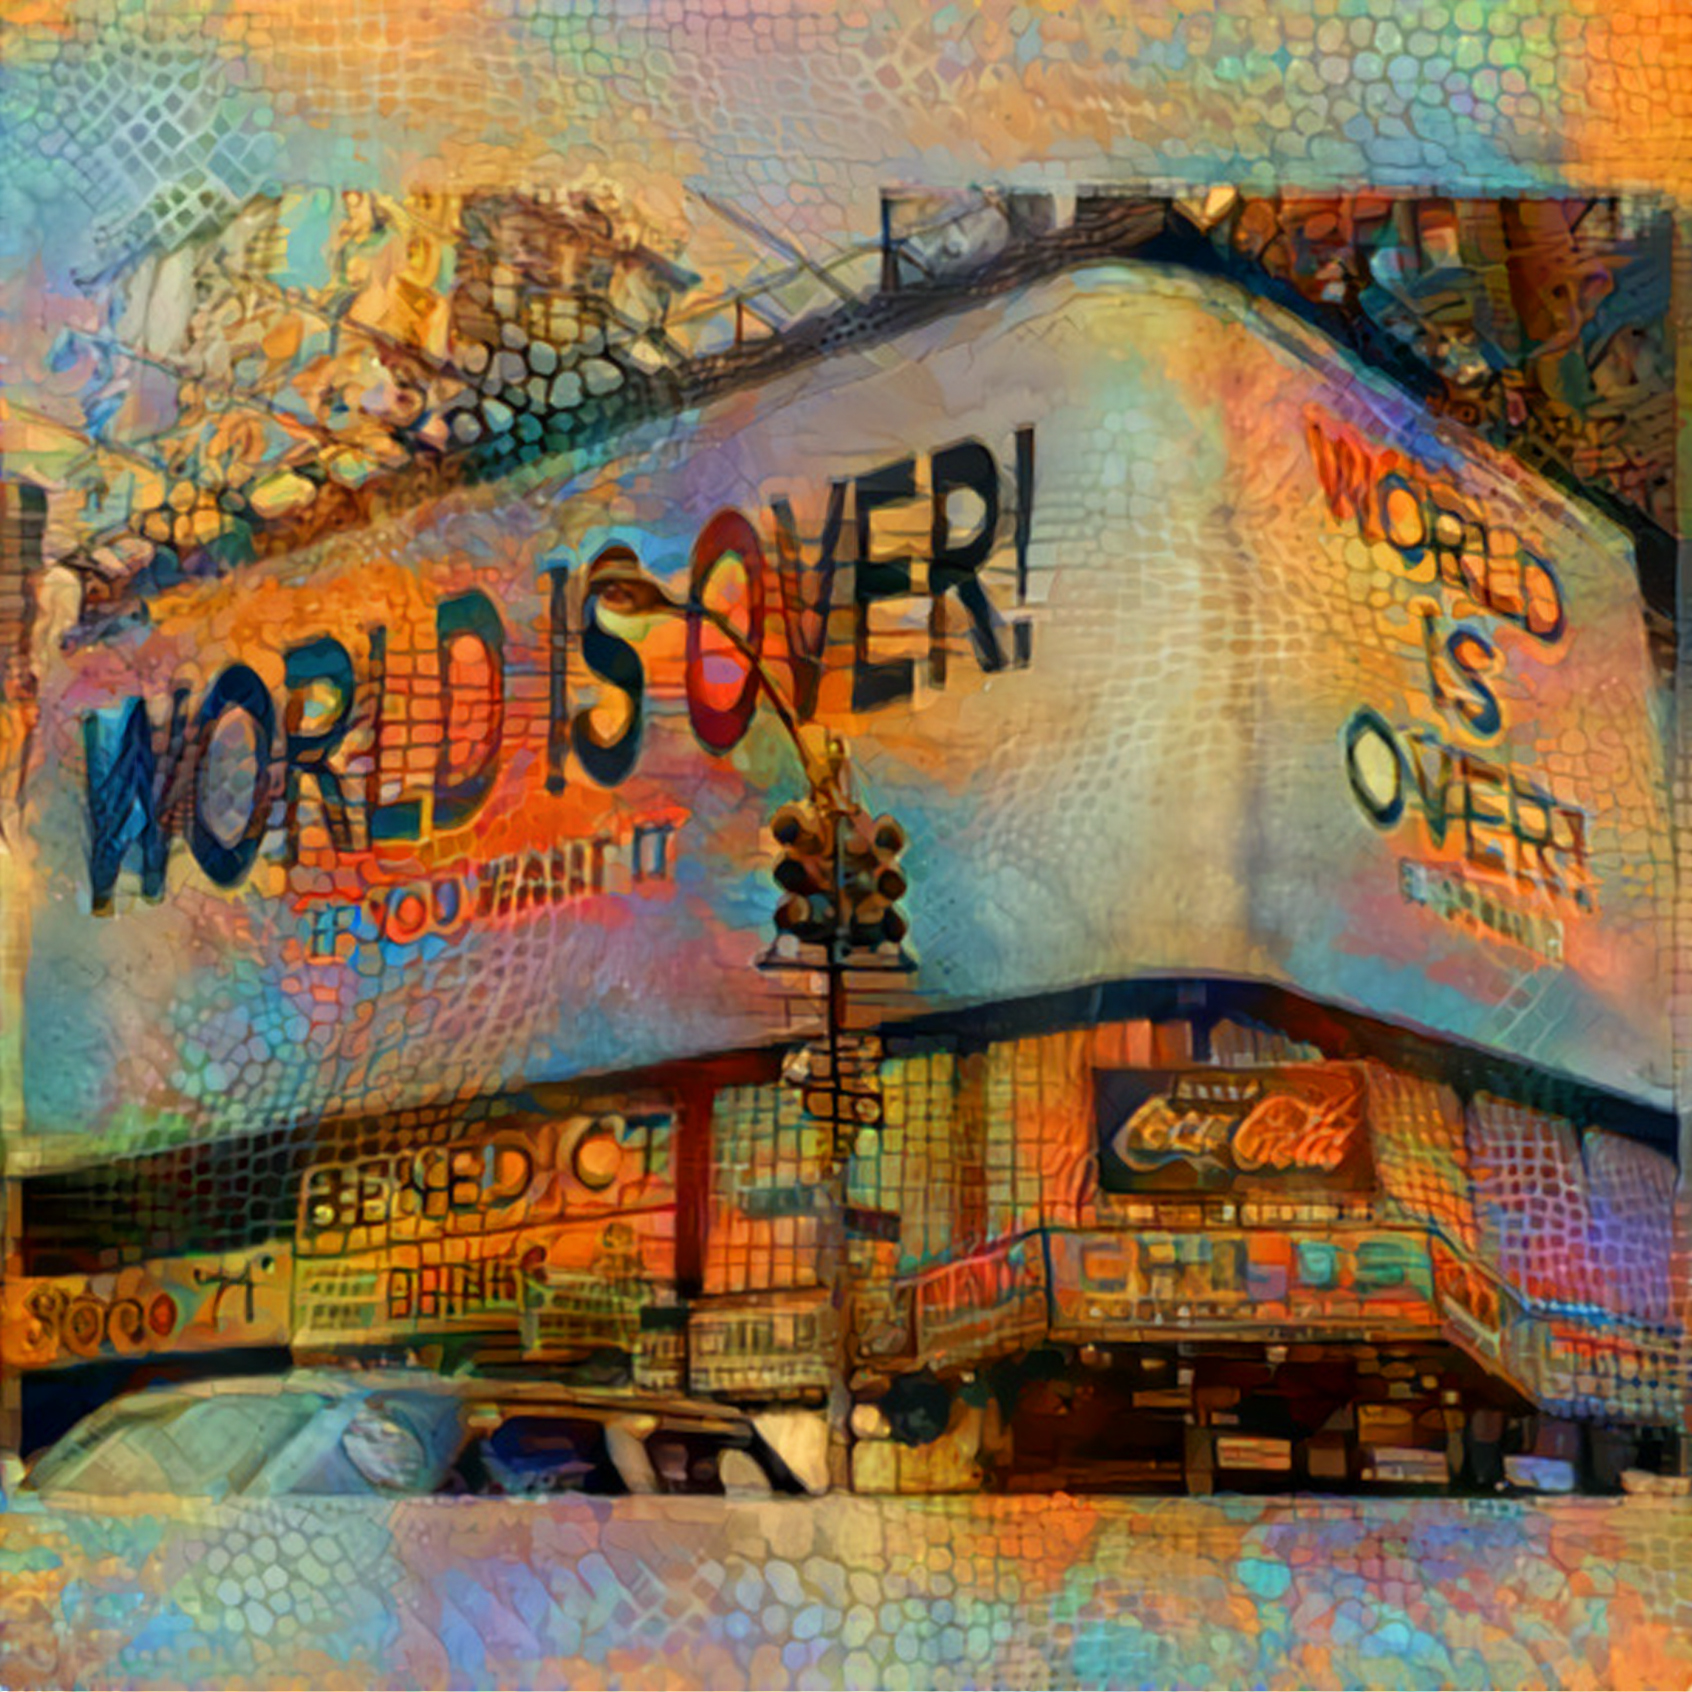 various artist – The World is Over! A-Side